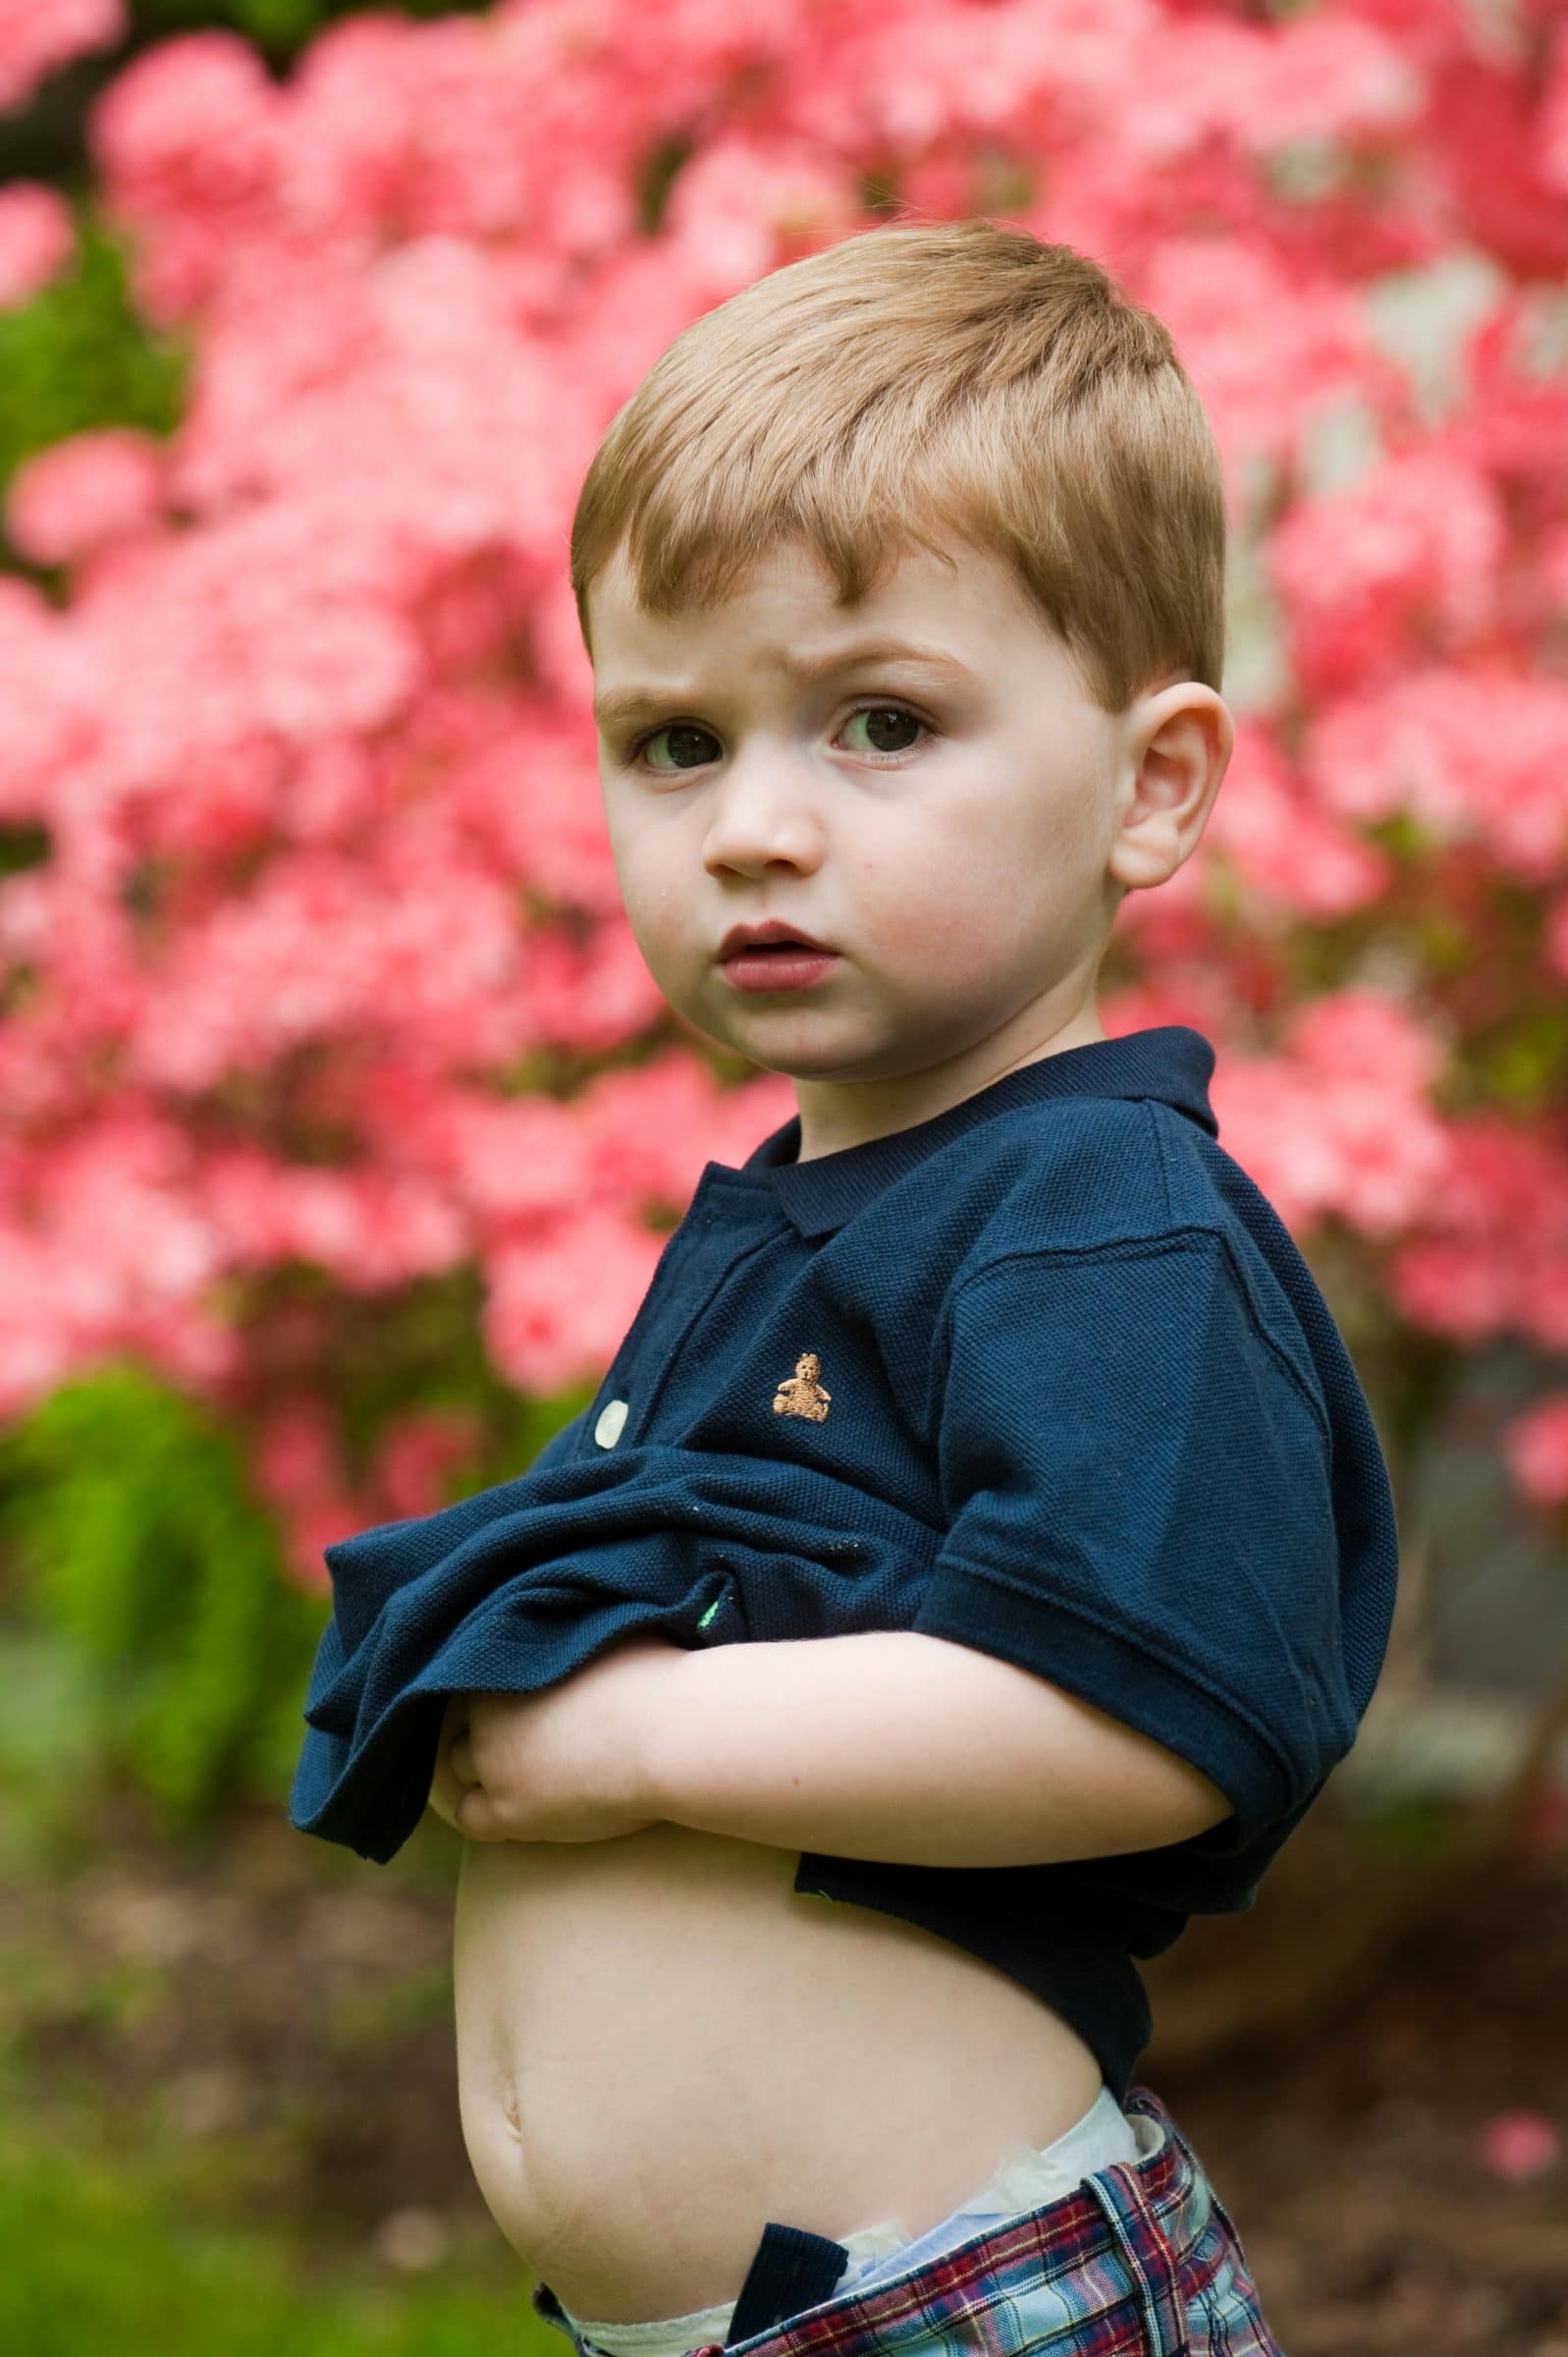 young boy sticking out tummy